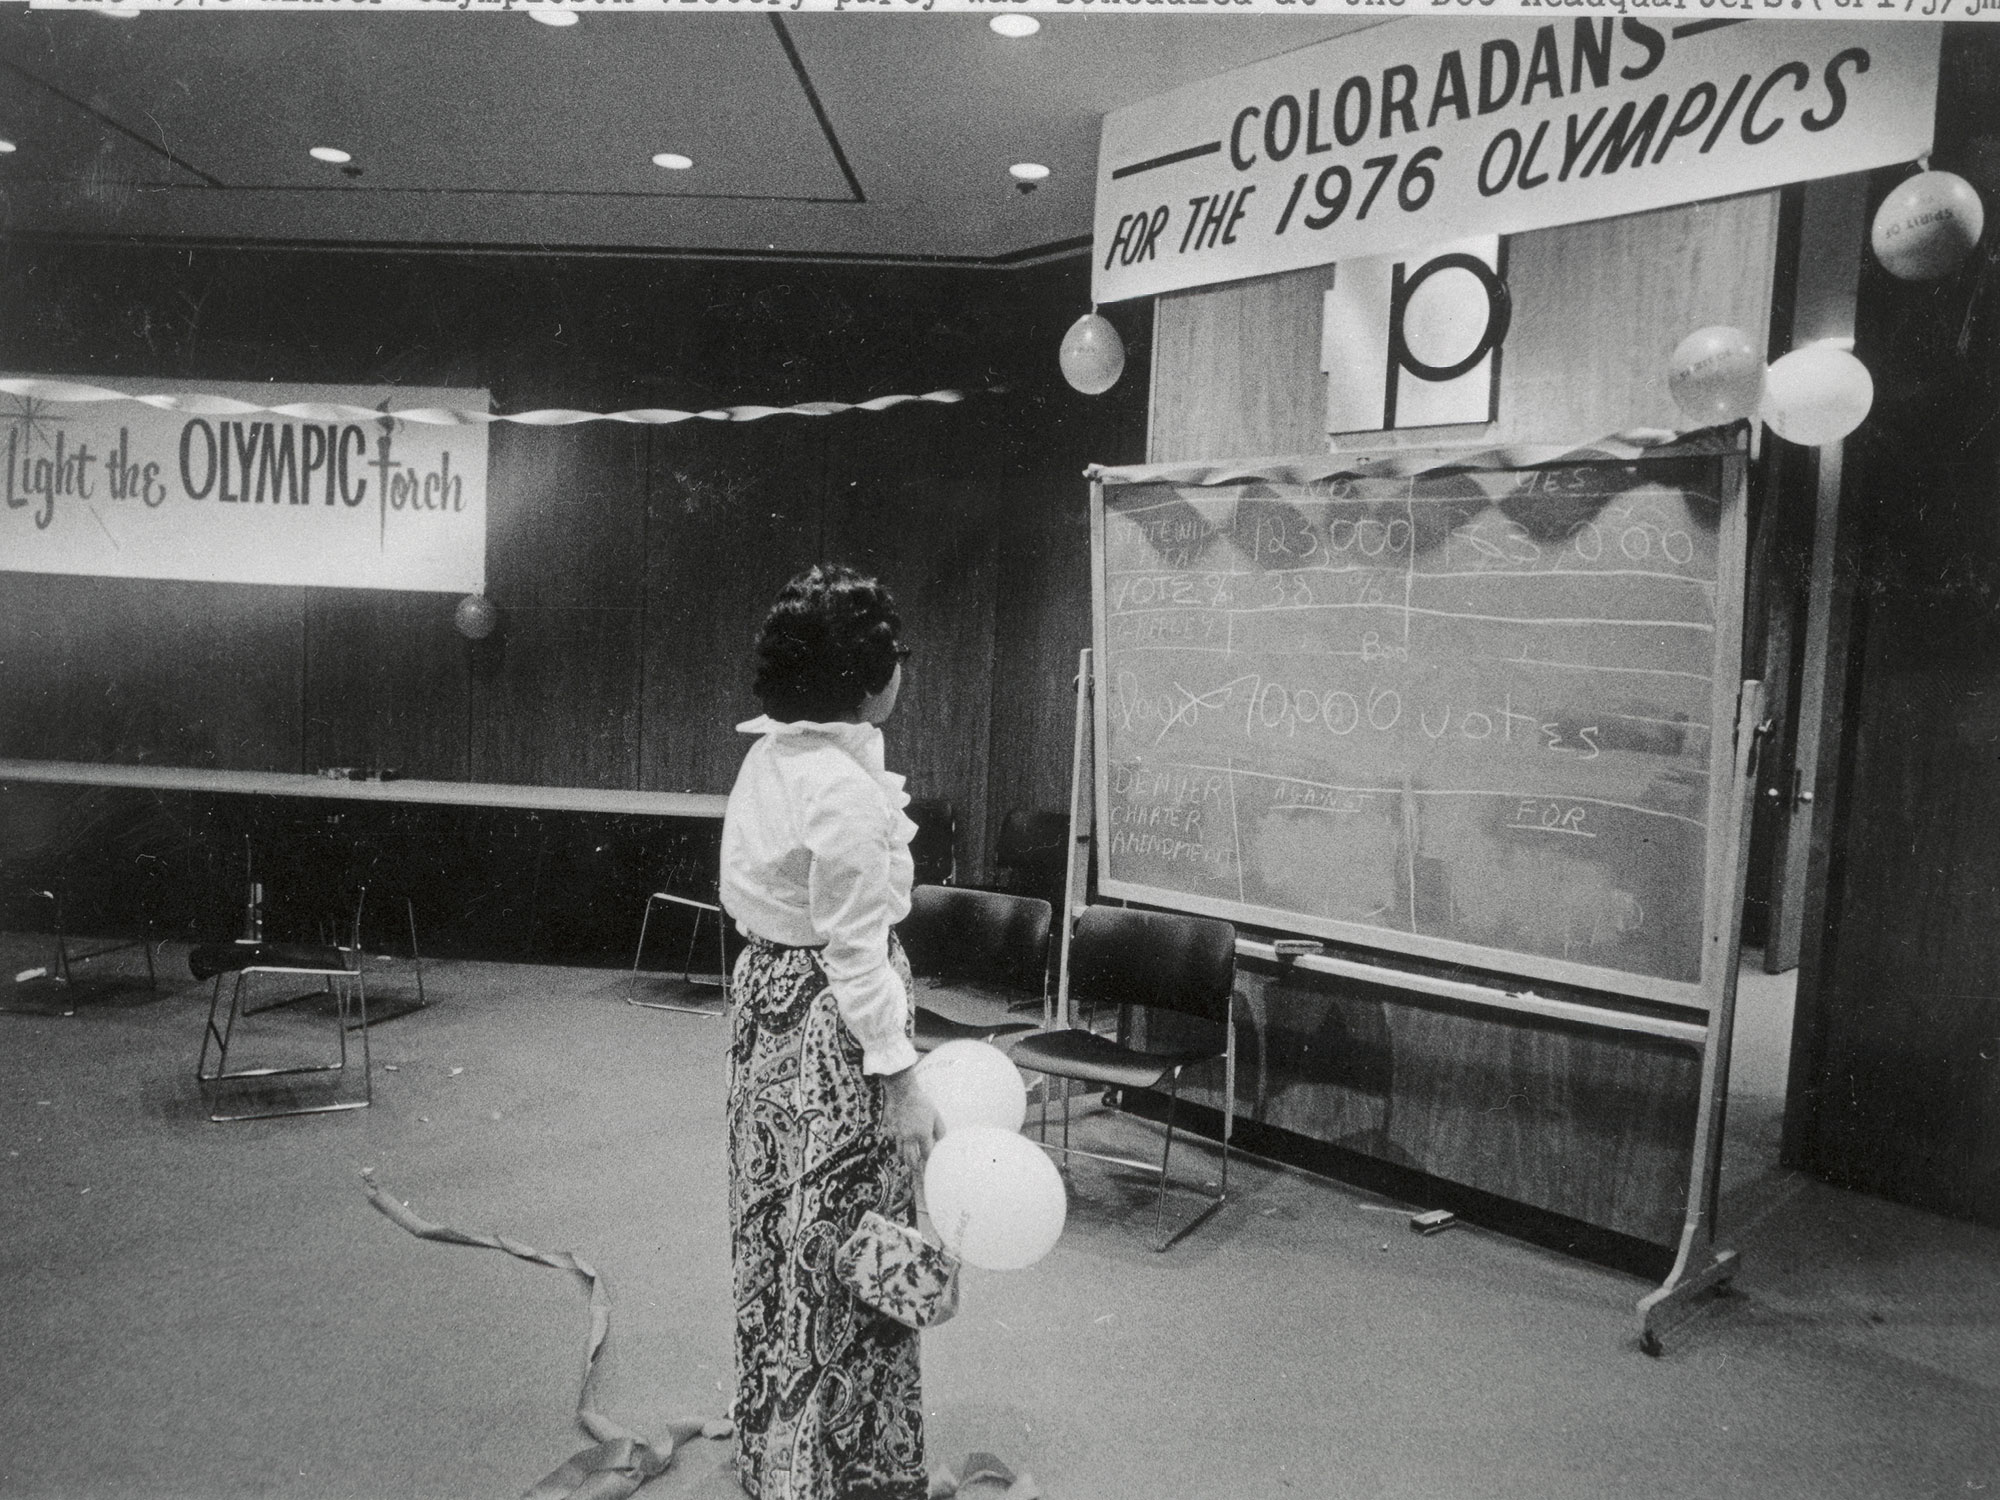 Colorado voters rejected funding of the 1976 Winter Olympics. A victory party was scheduled at the DOOC headquarters.